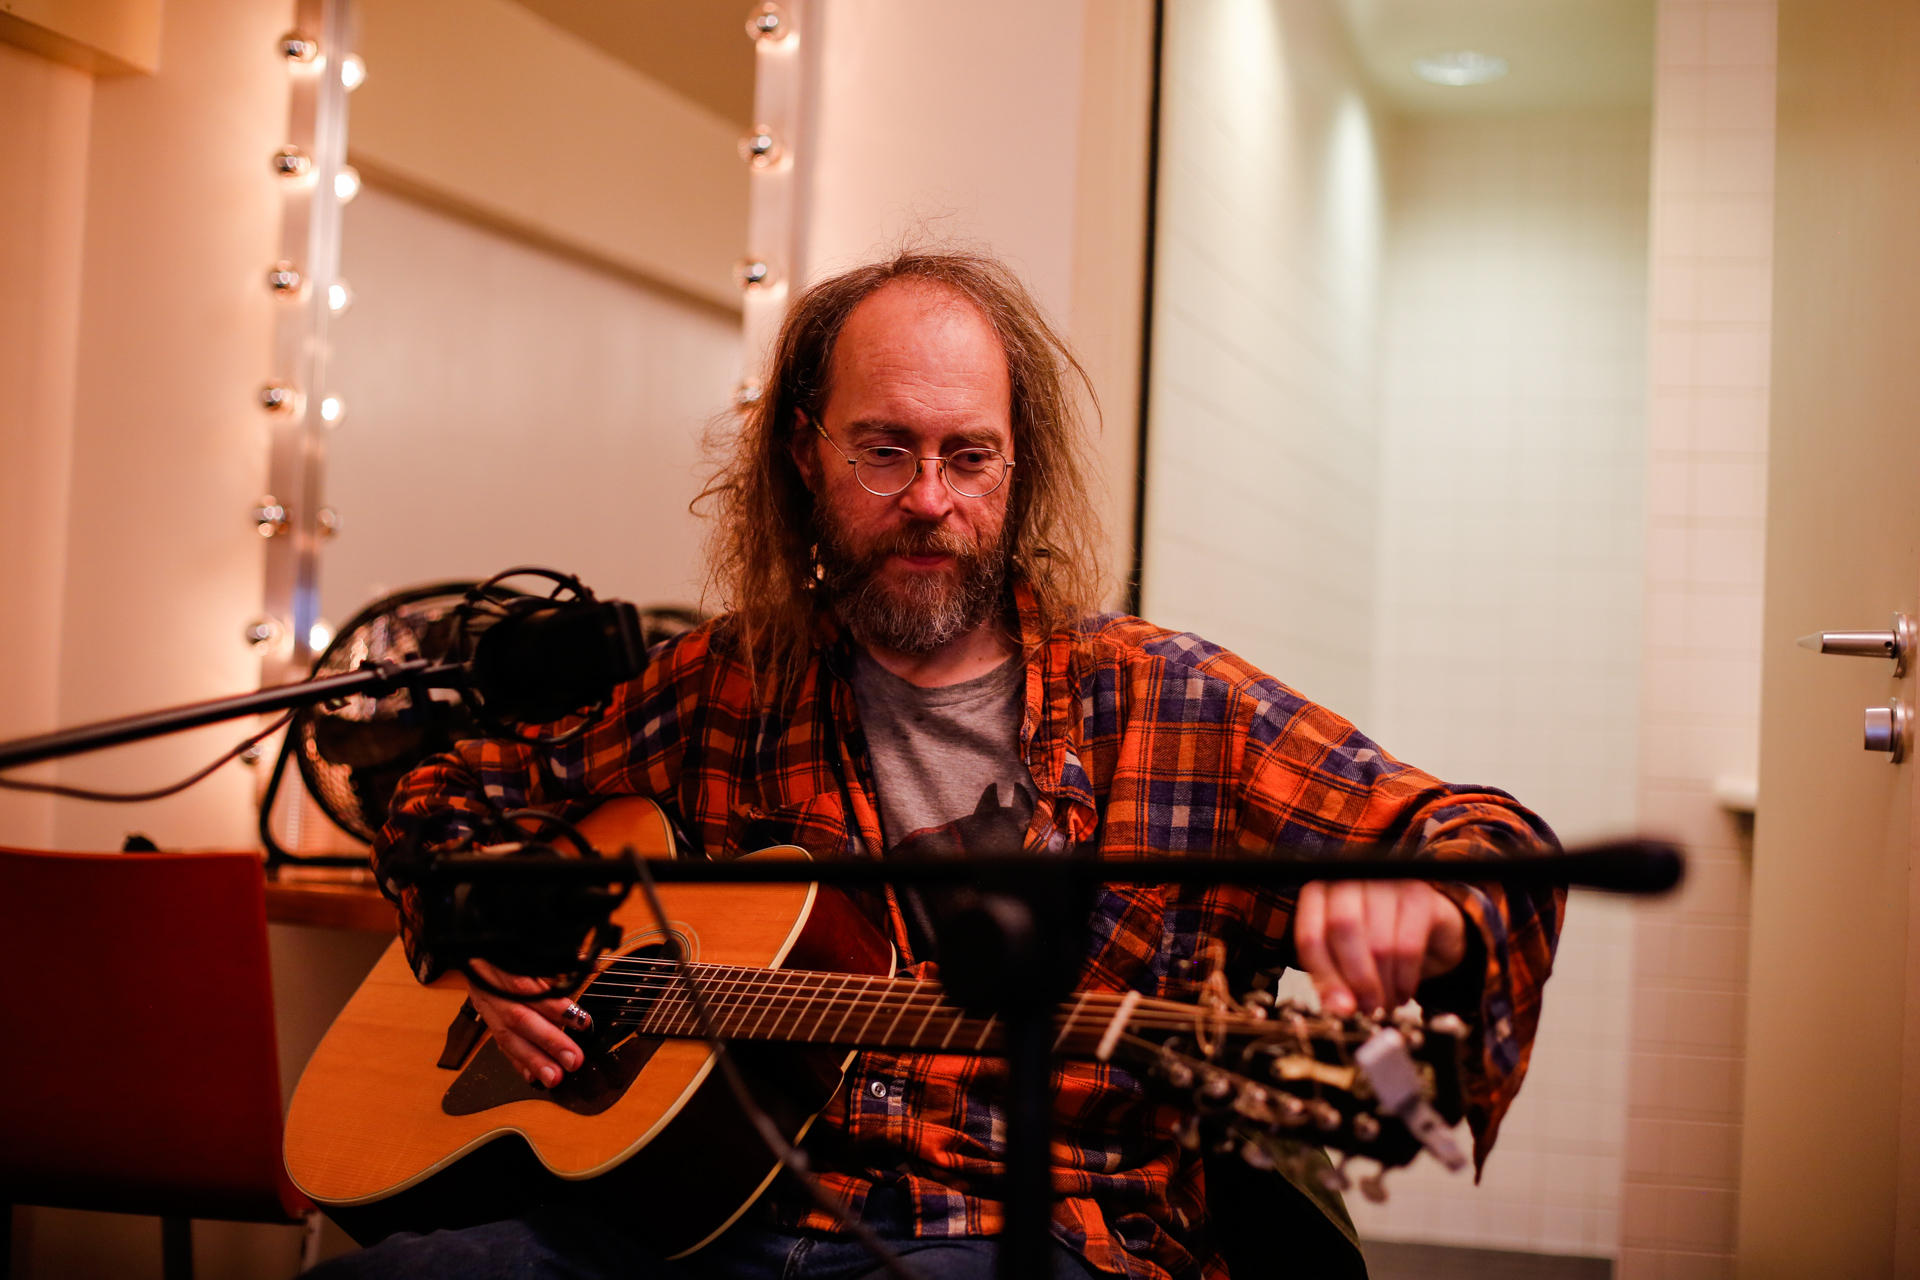 Charlie Parr (Photo by Matthijs van der Ven for The Influences)